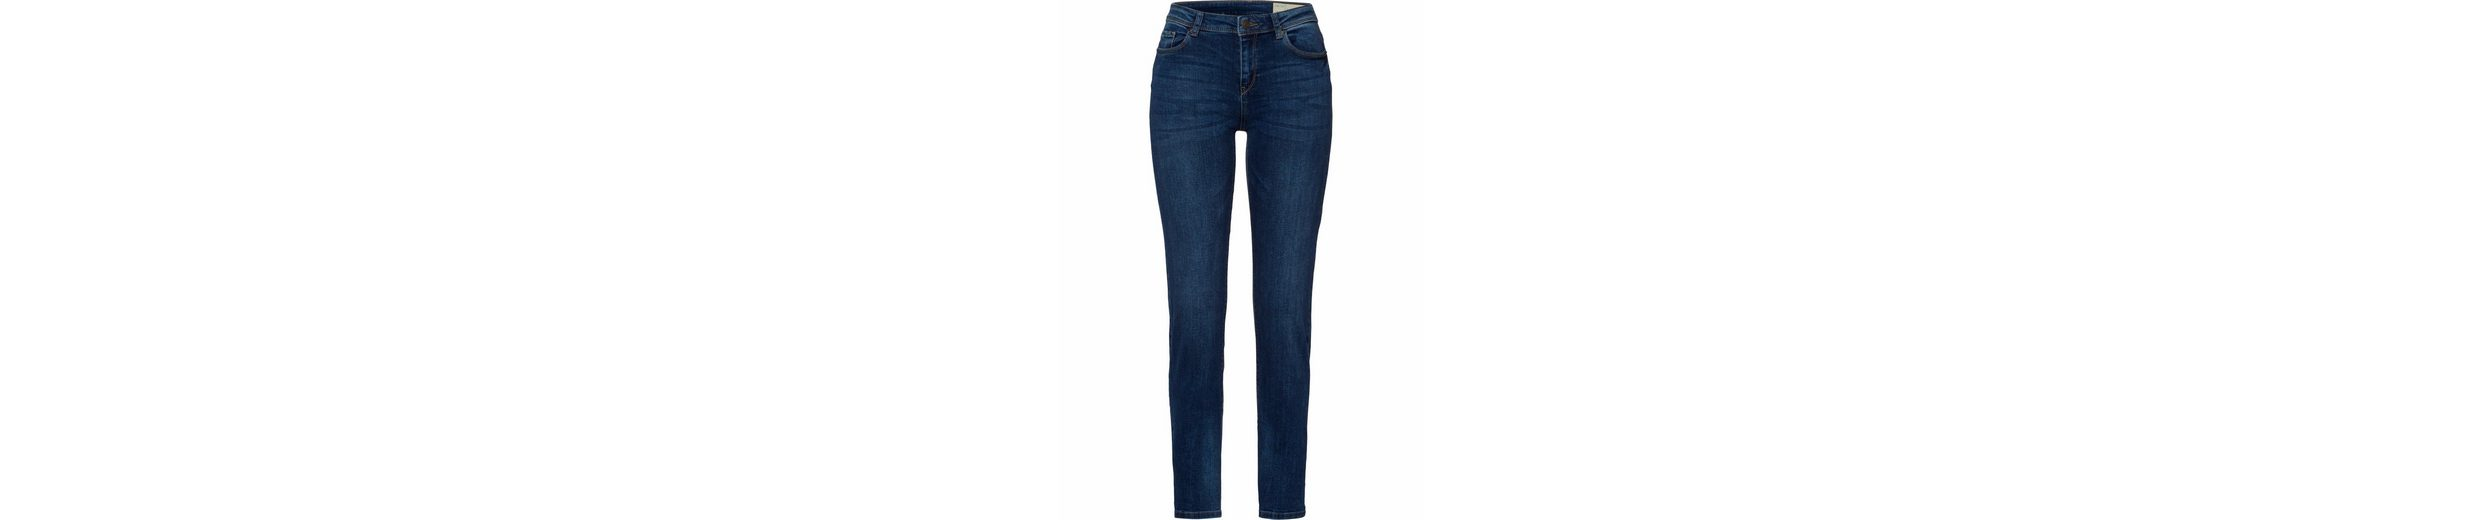 ESPRIT Straight-Jeans, im Five-Pocket-Design